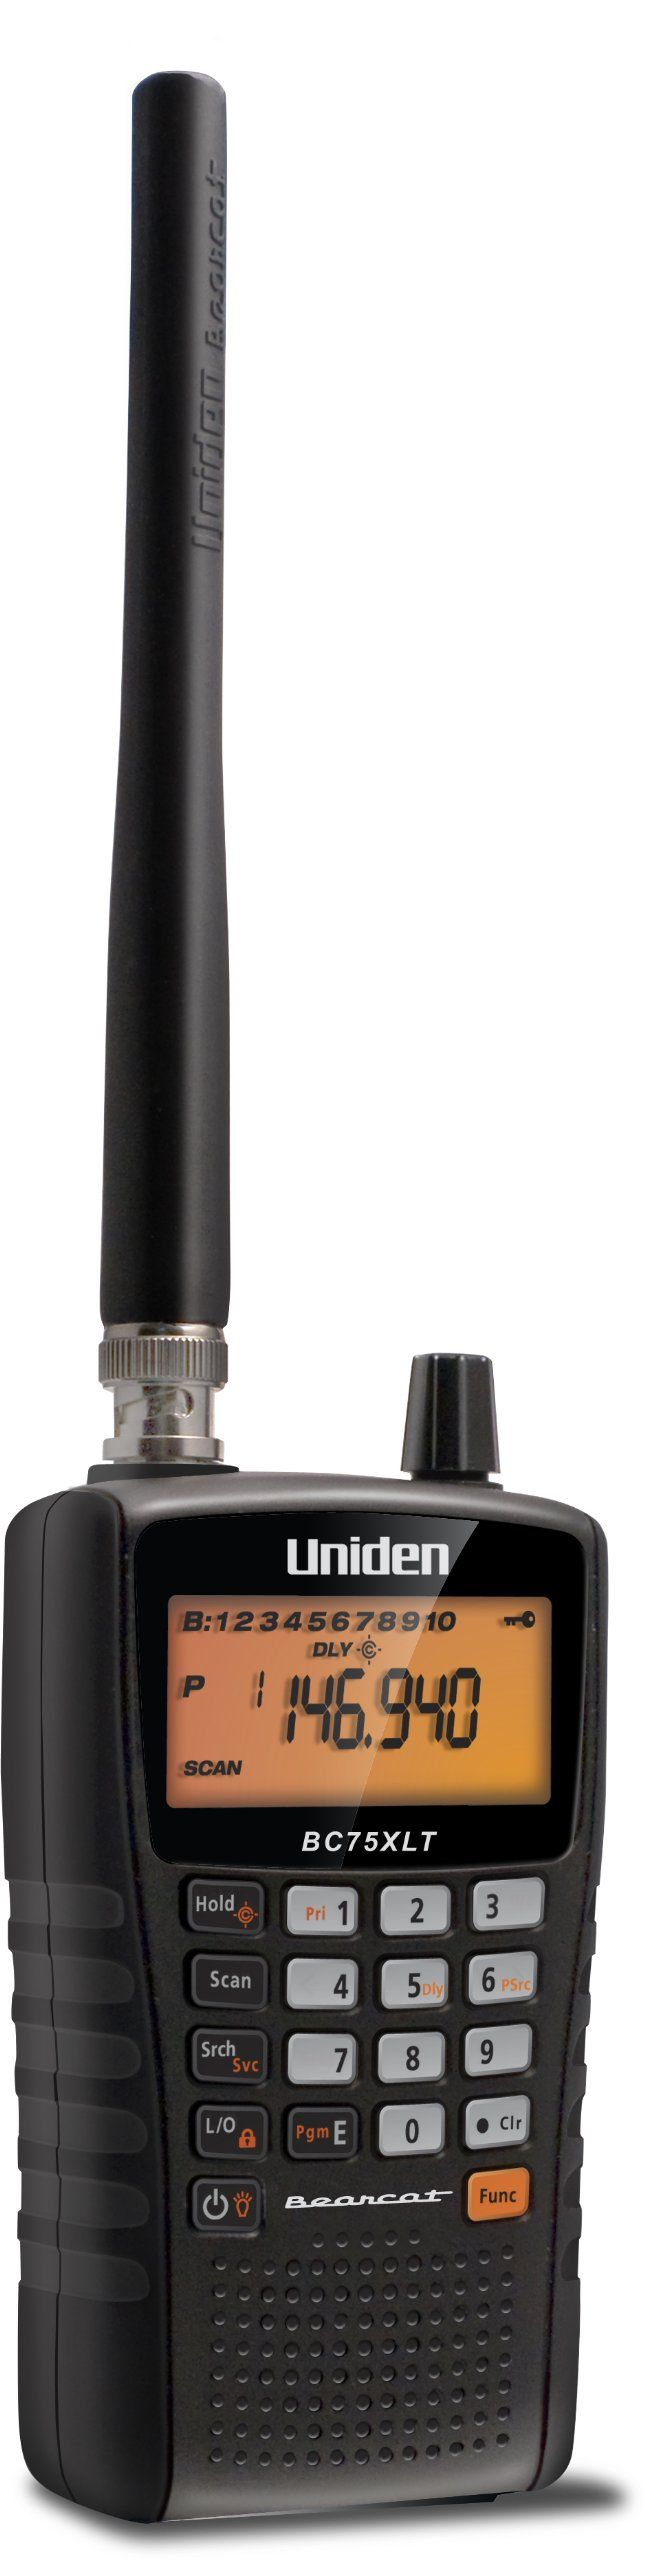 Uniden BC75XLT: Public Safety Scanner, Racing Scanner with 300 Channels